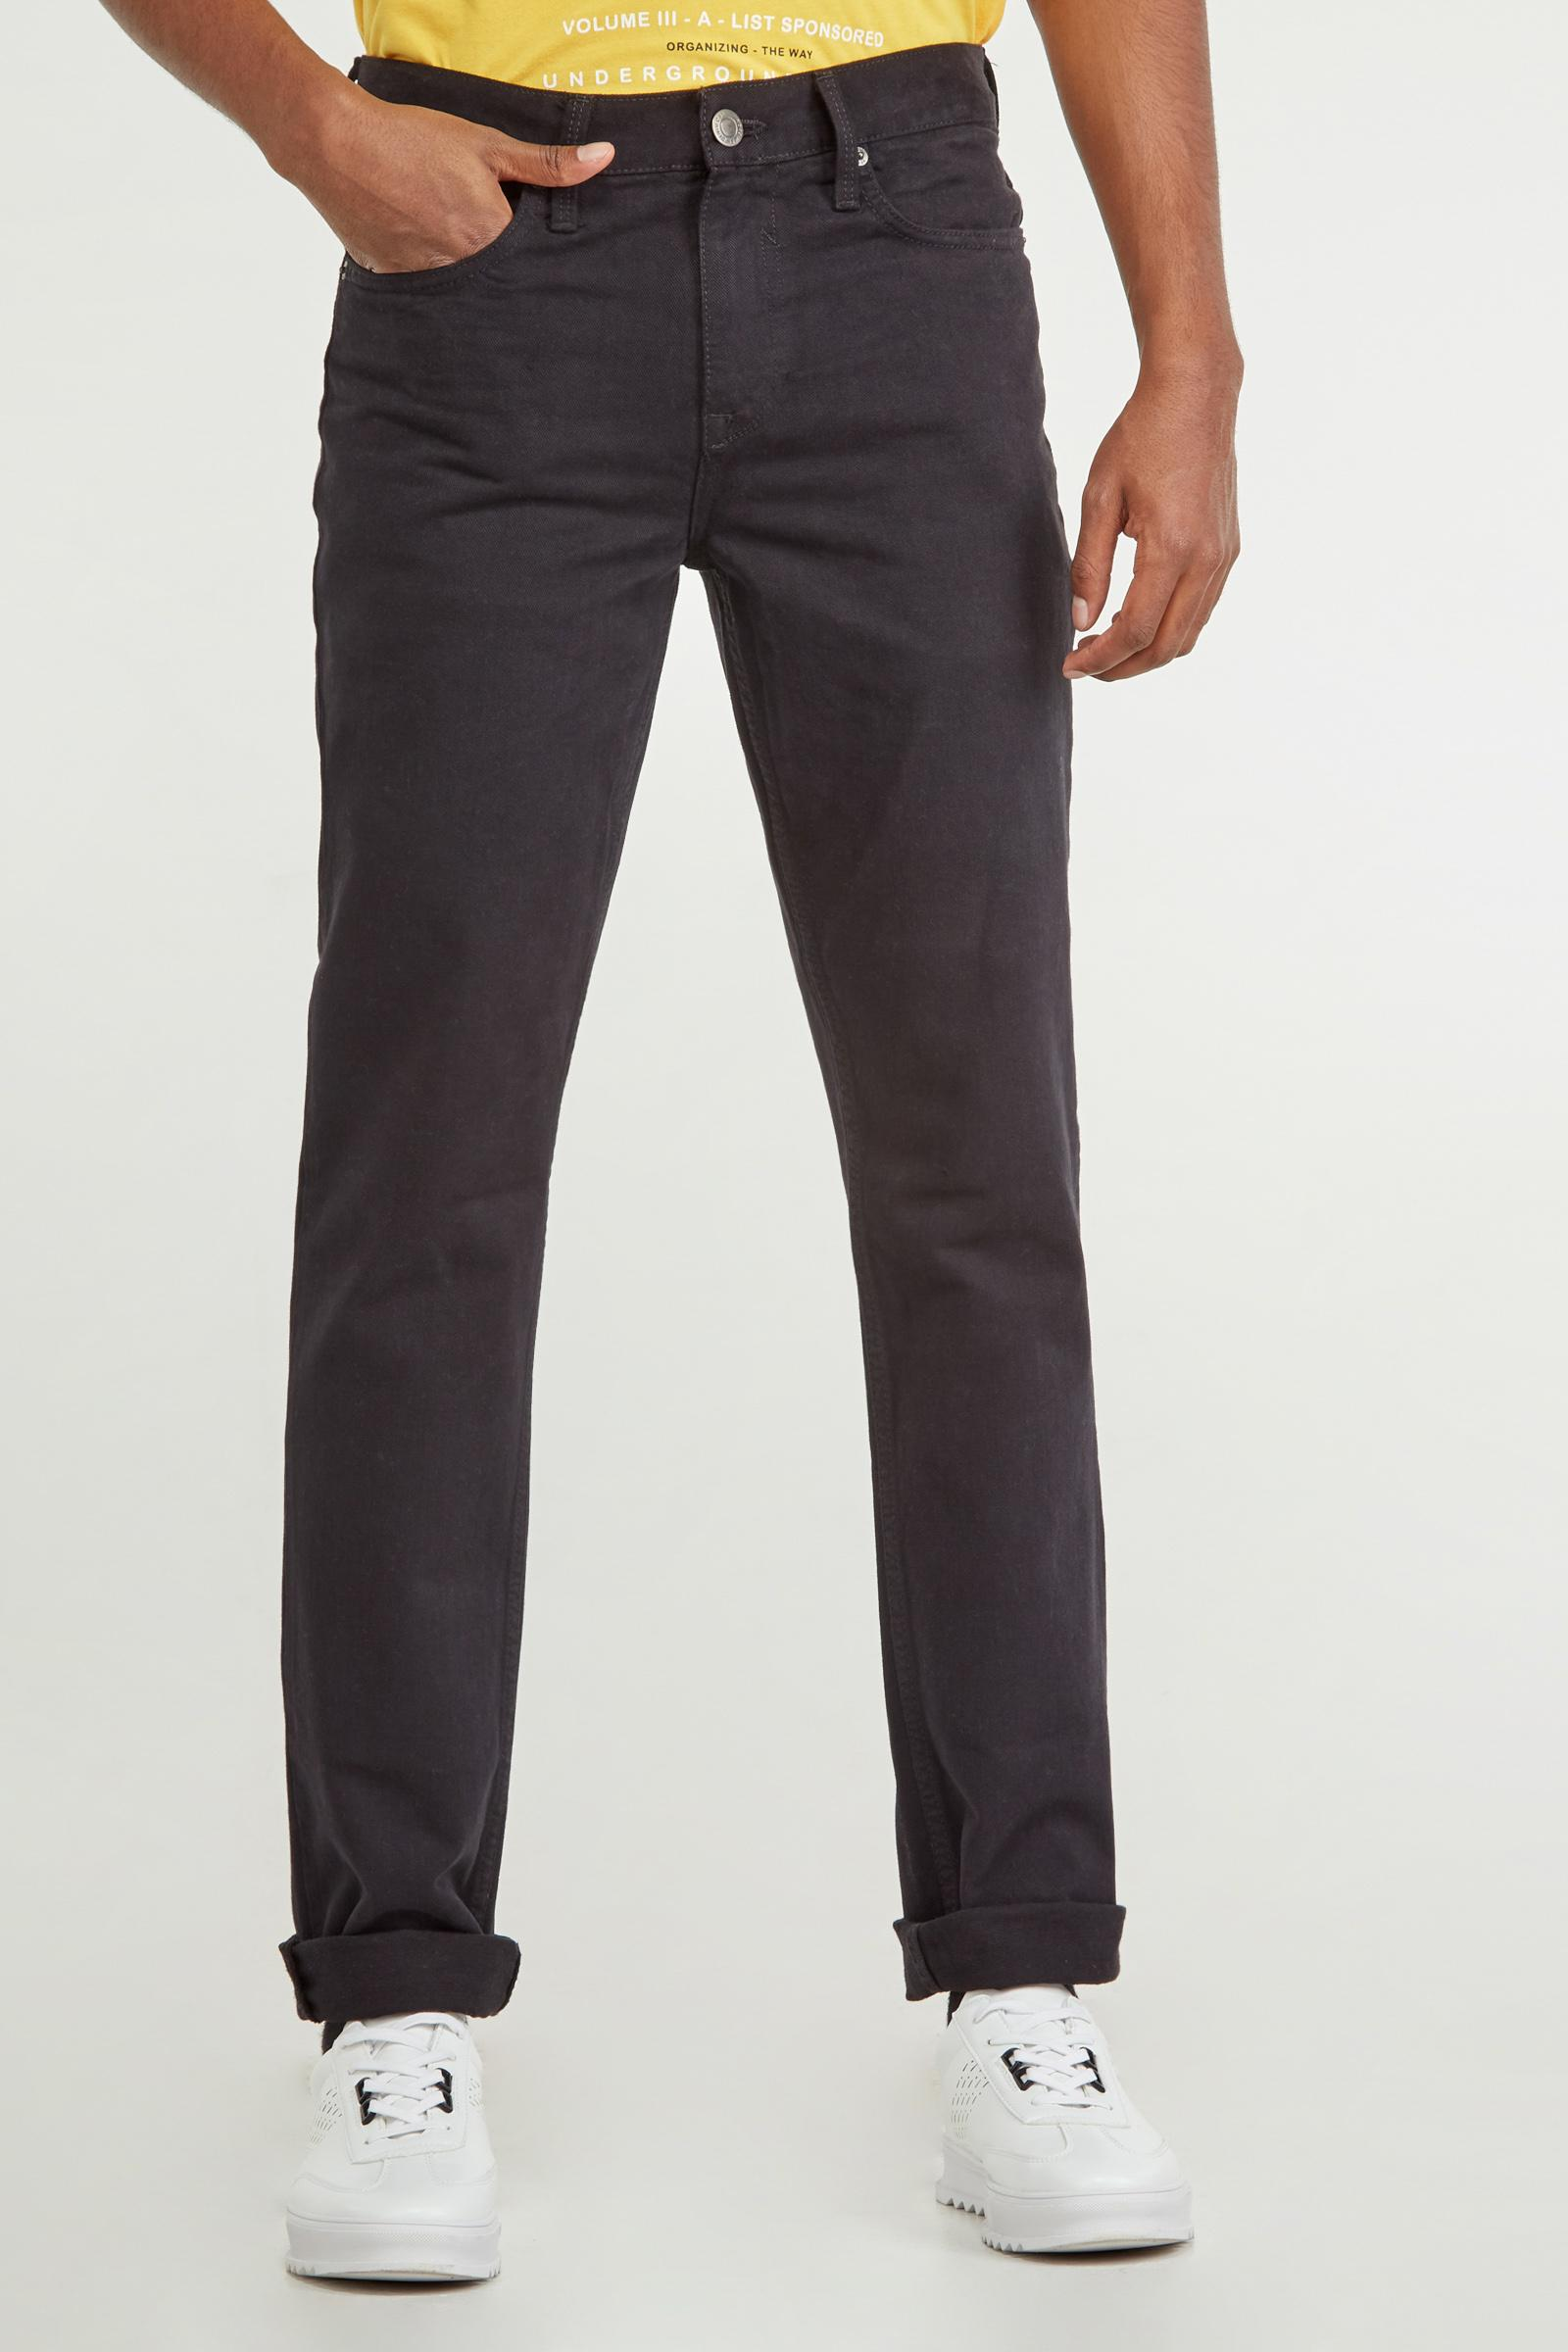 KOAJ-PANTALON KOAJ AUTHENTIC 20 3/18